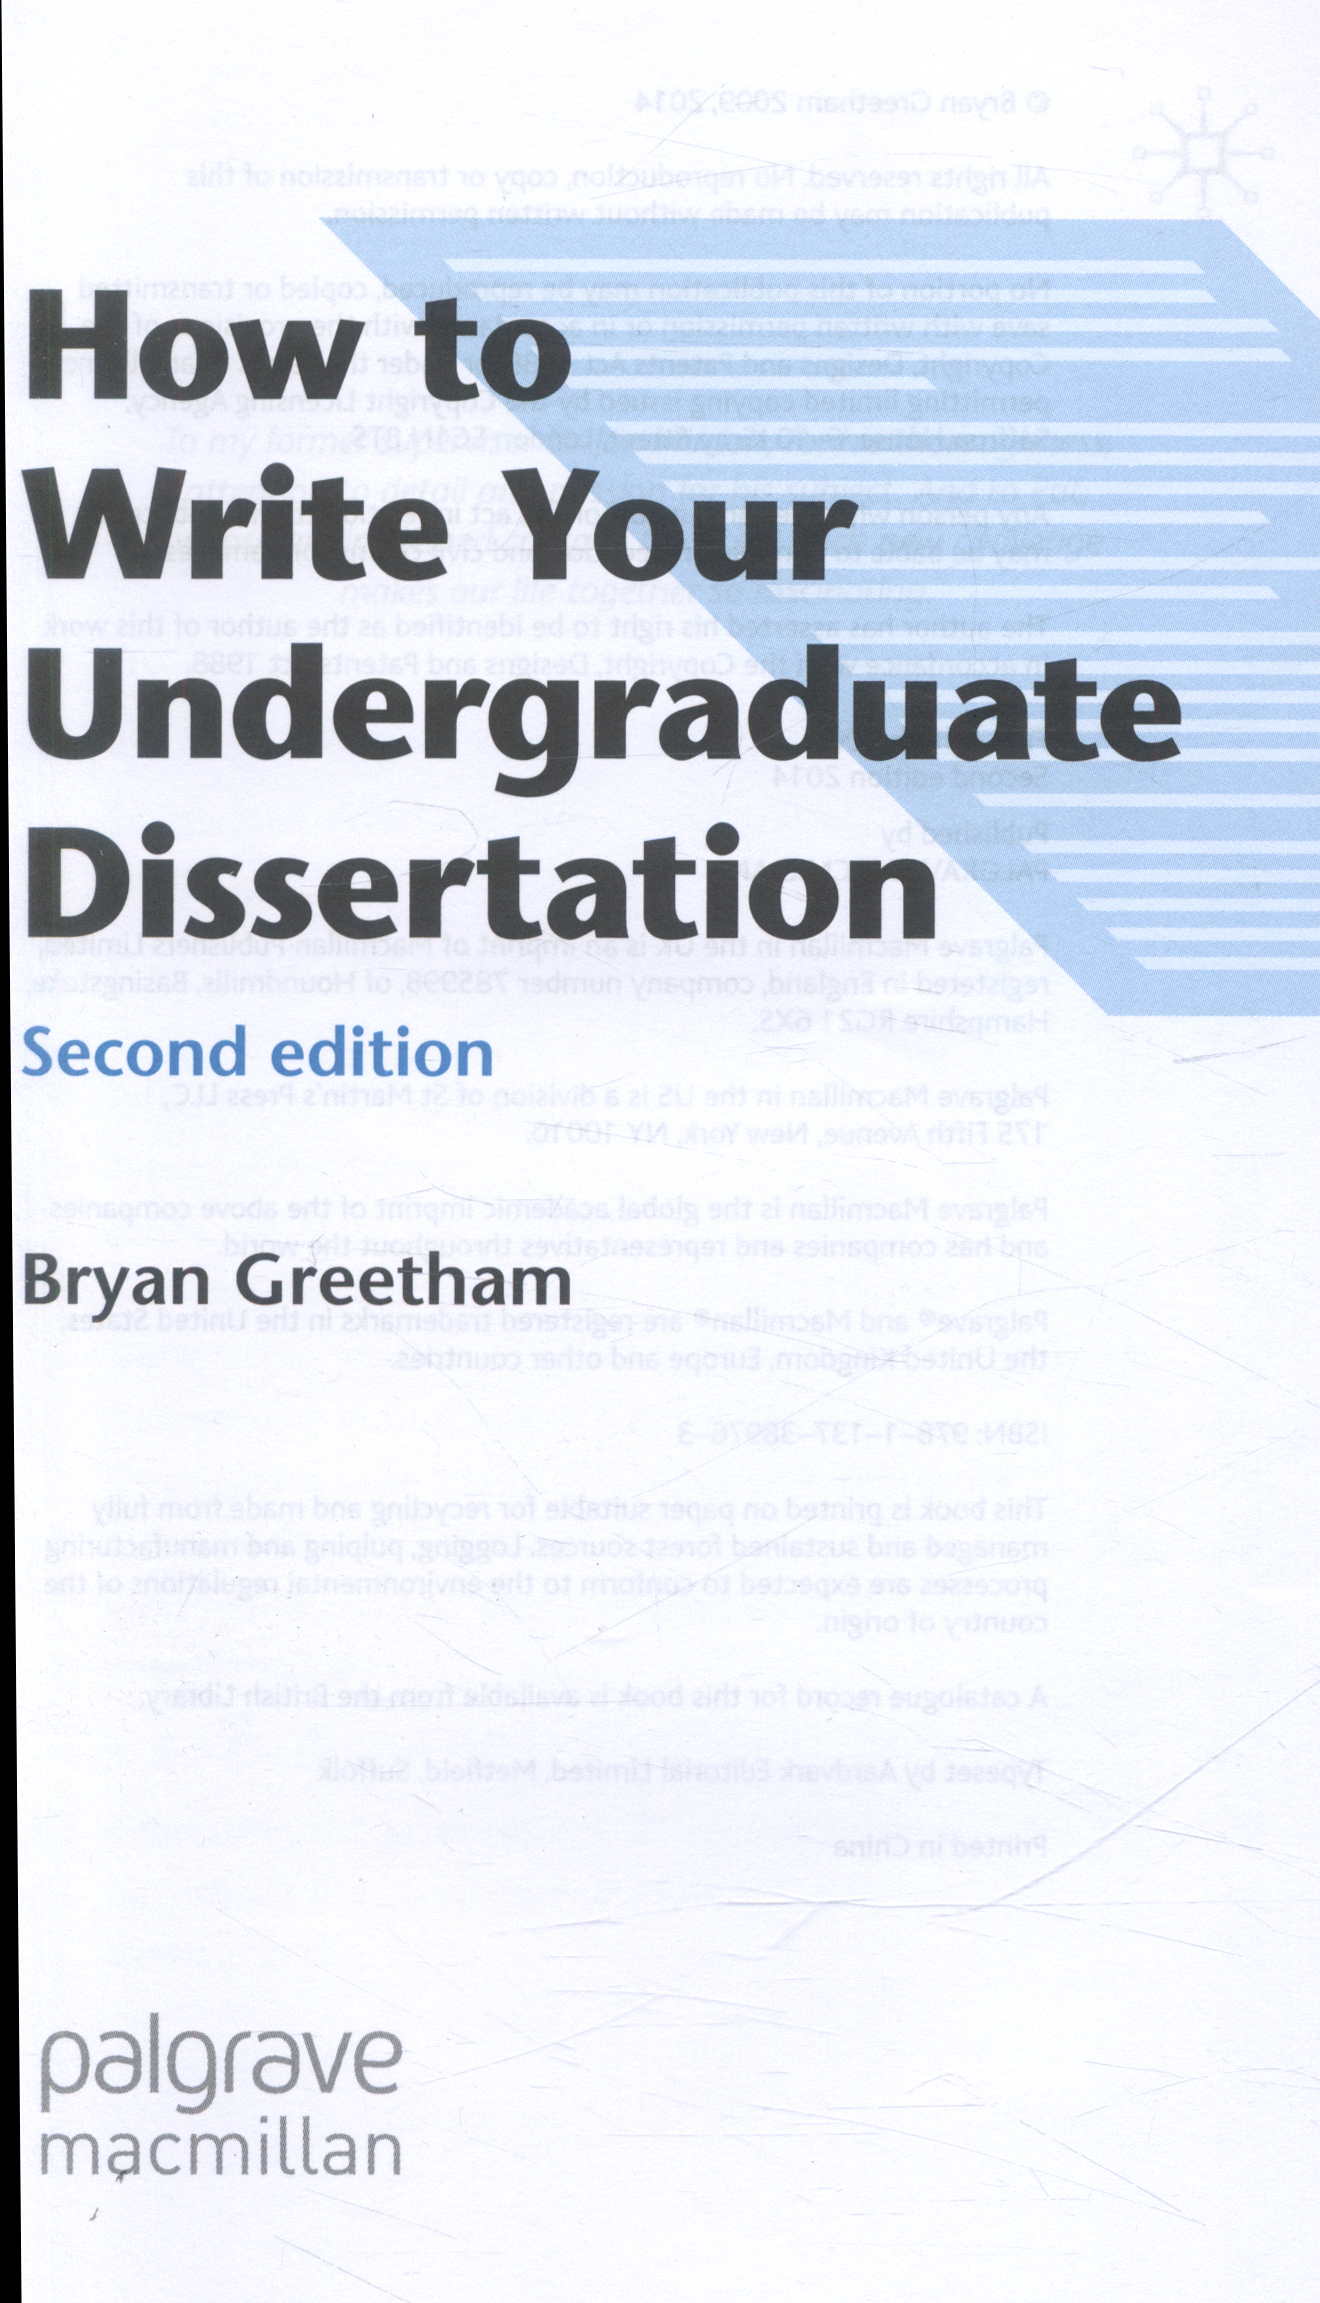 Greetham b (2009) how to write your undergraduate dissertation